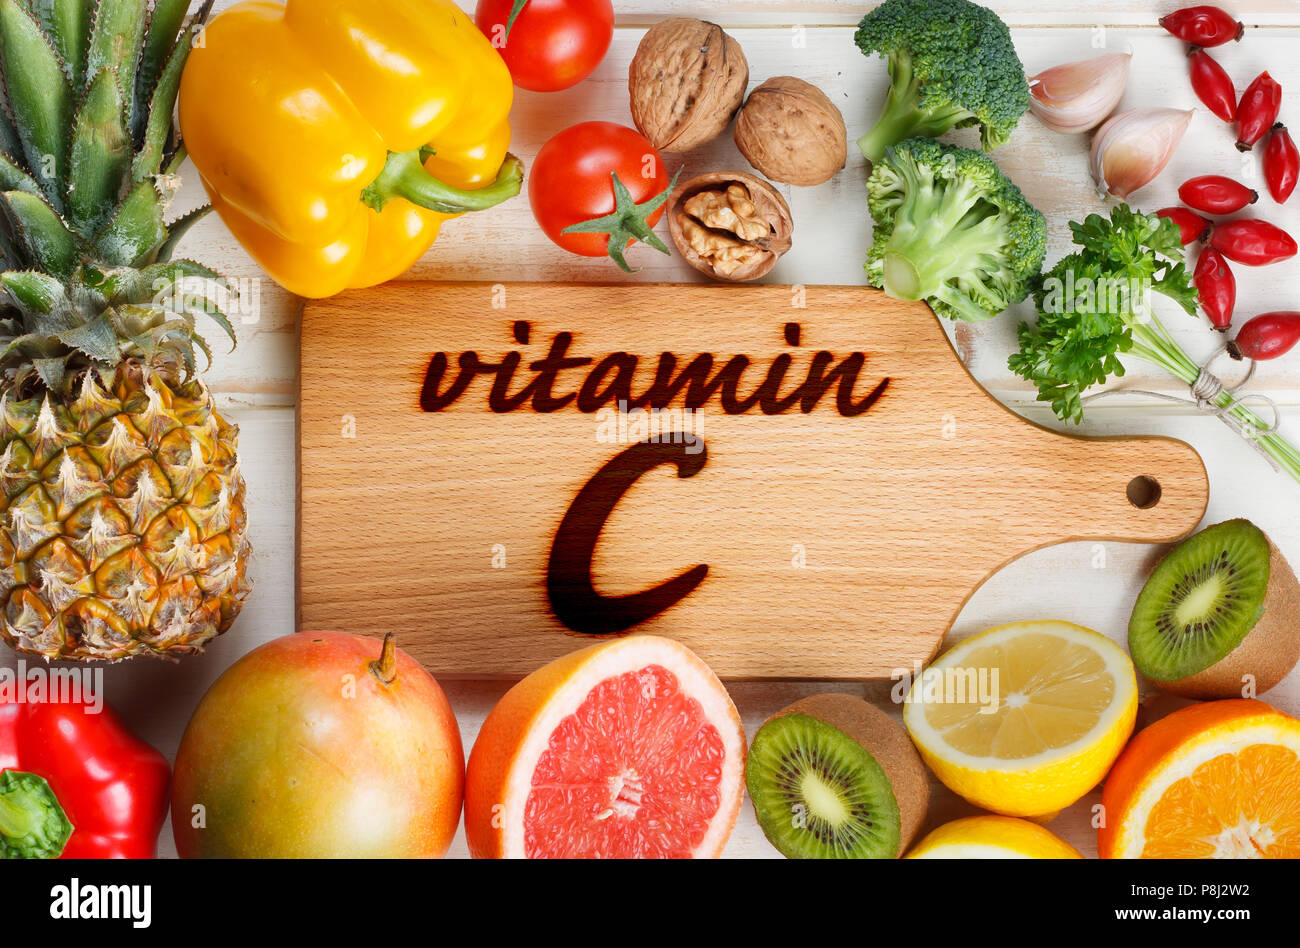 Vitamin C in fruits and vegetables. Natural products rich in vitamin C as oranges, lemons, dried fruits rose, red pepper, kiwi, parsley leaves, garlic - Stock Image